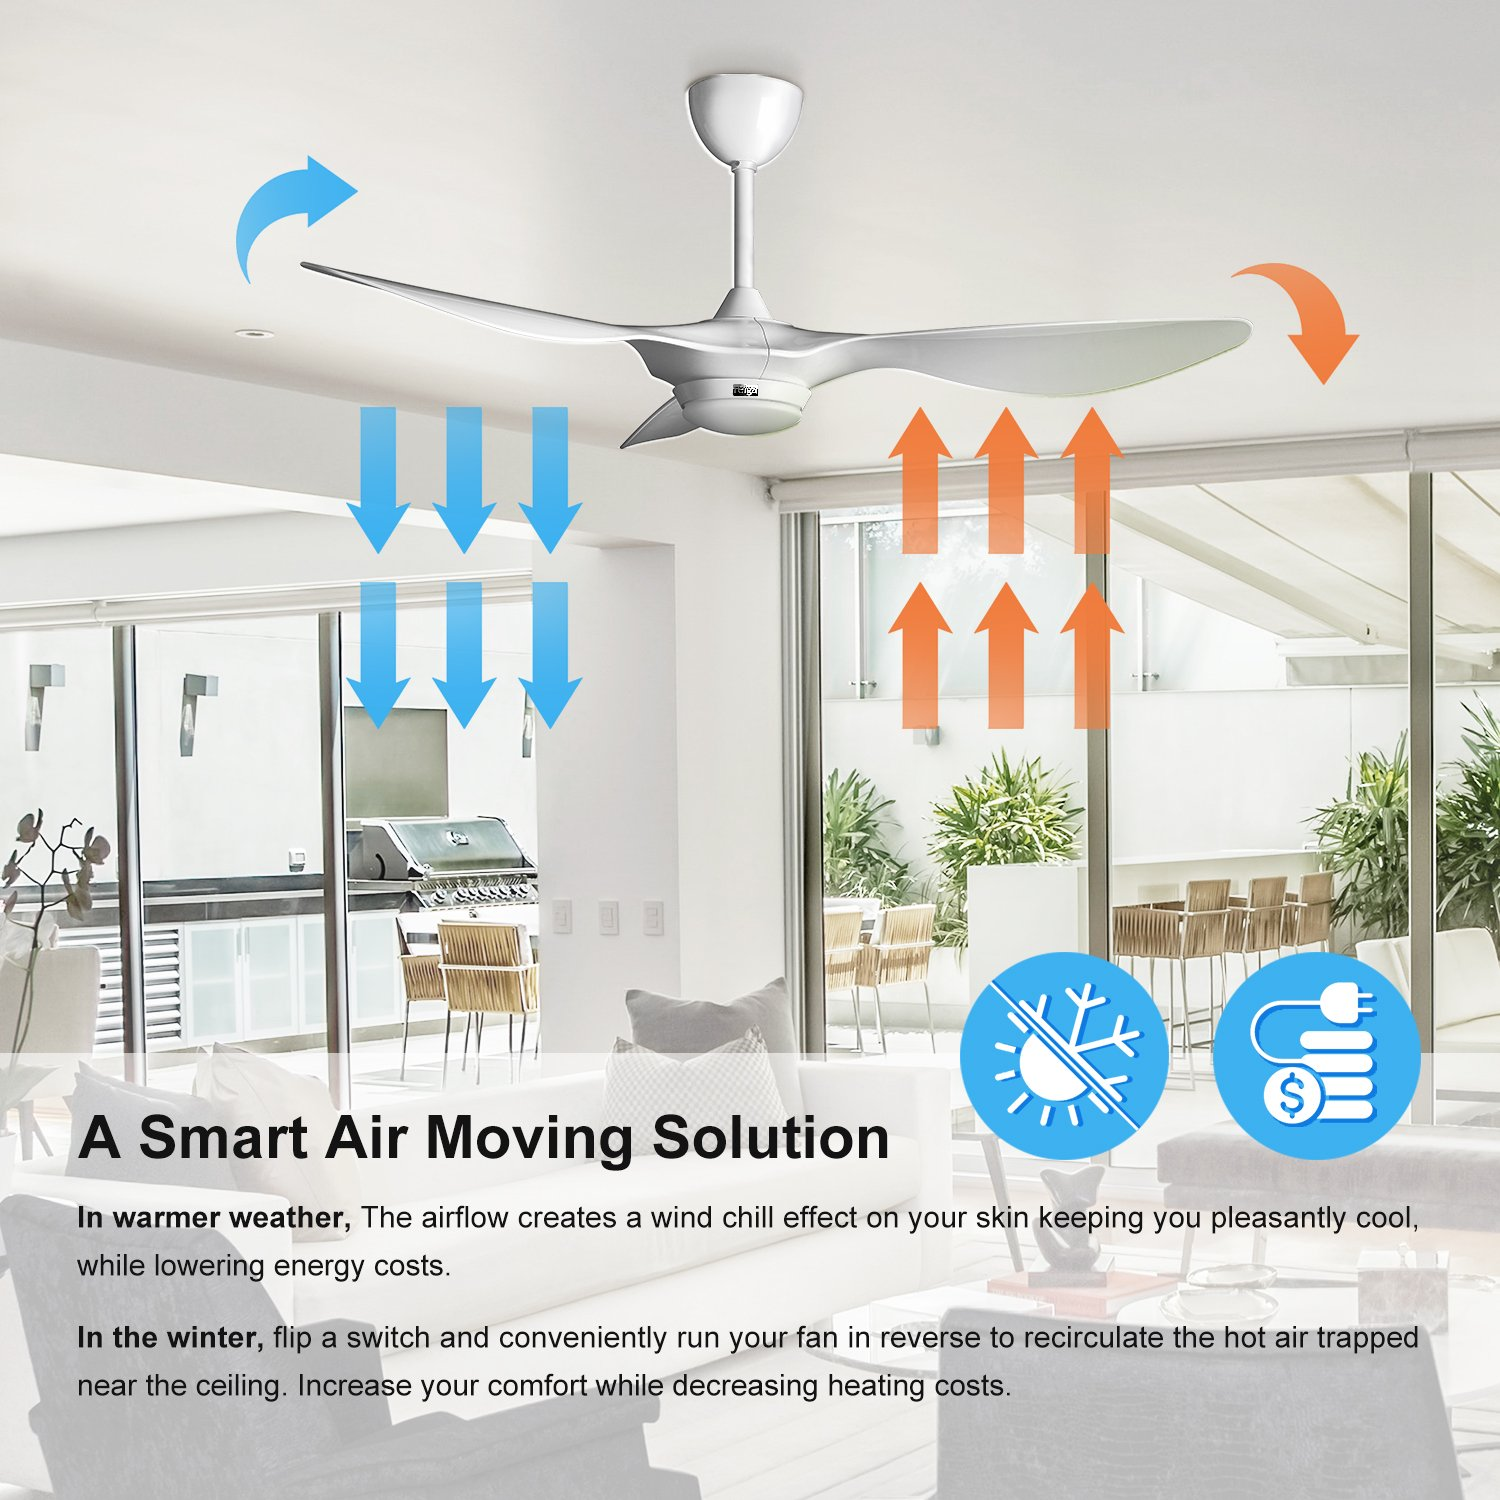 reiga 52-in Ceiling Fan with LED Light Kit Remote Control Modern Blade Noiseless Reversible Motor